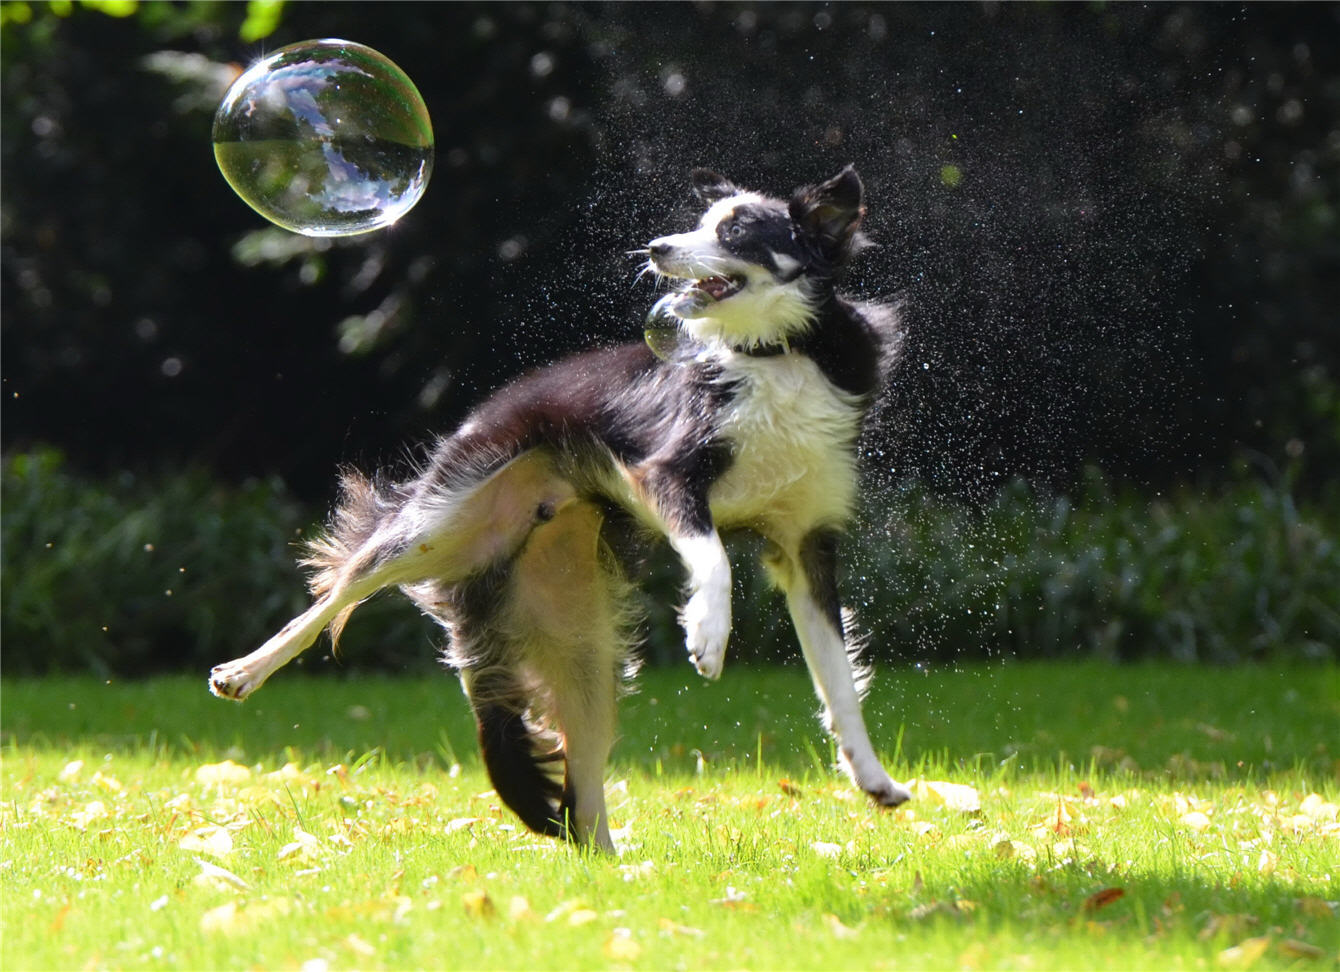 dog and soap-bubbles